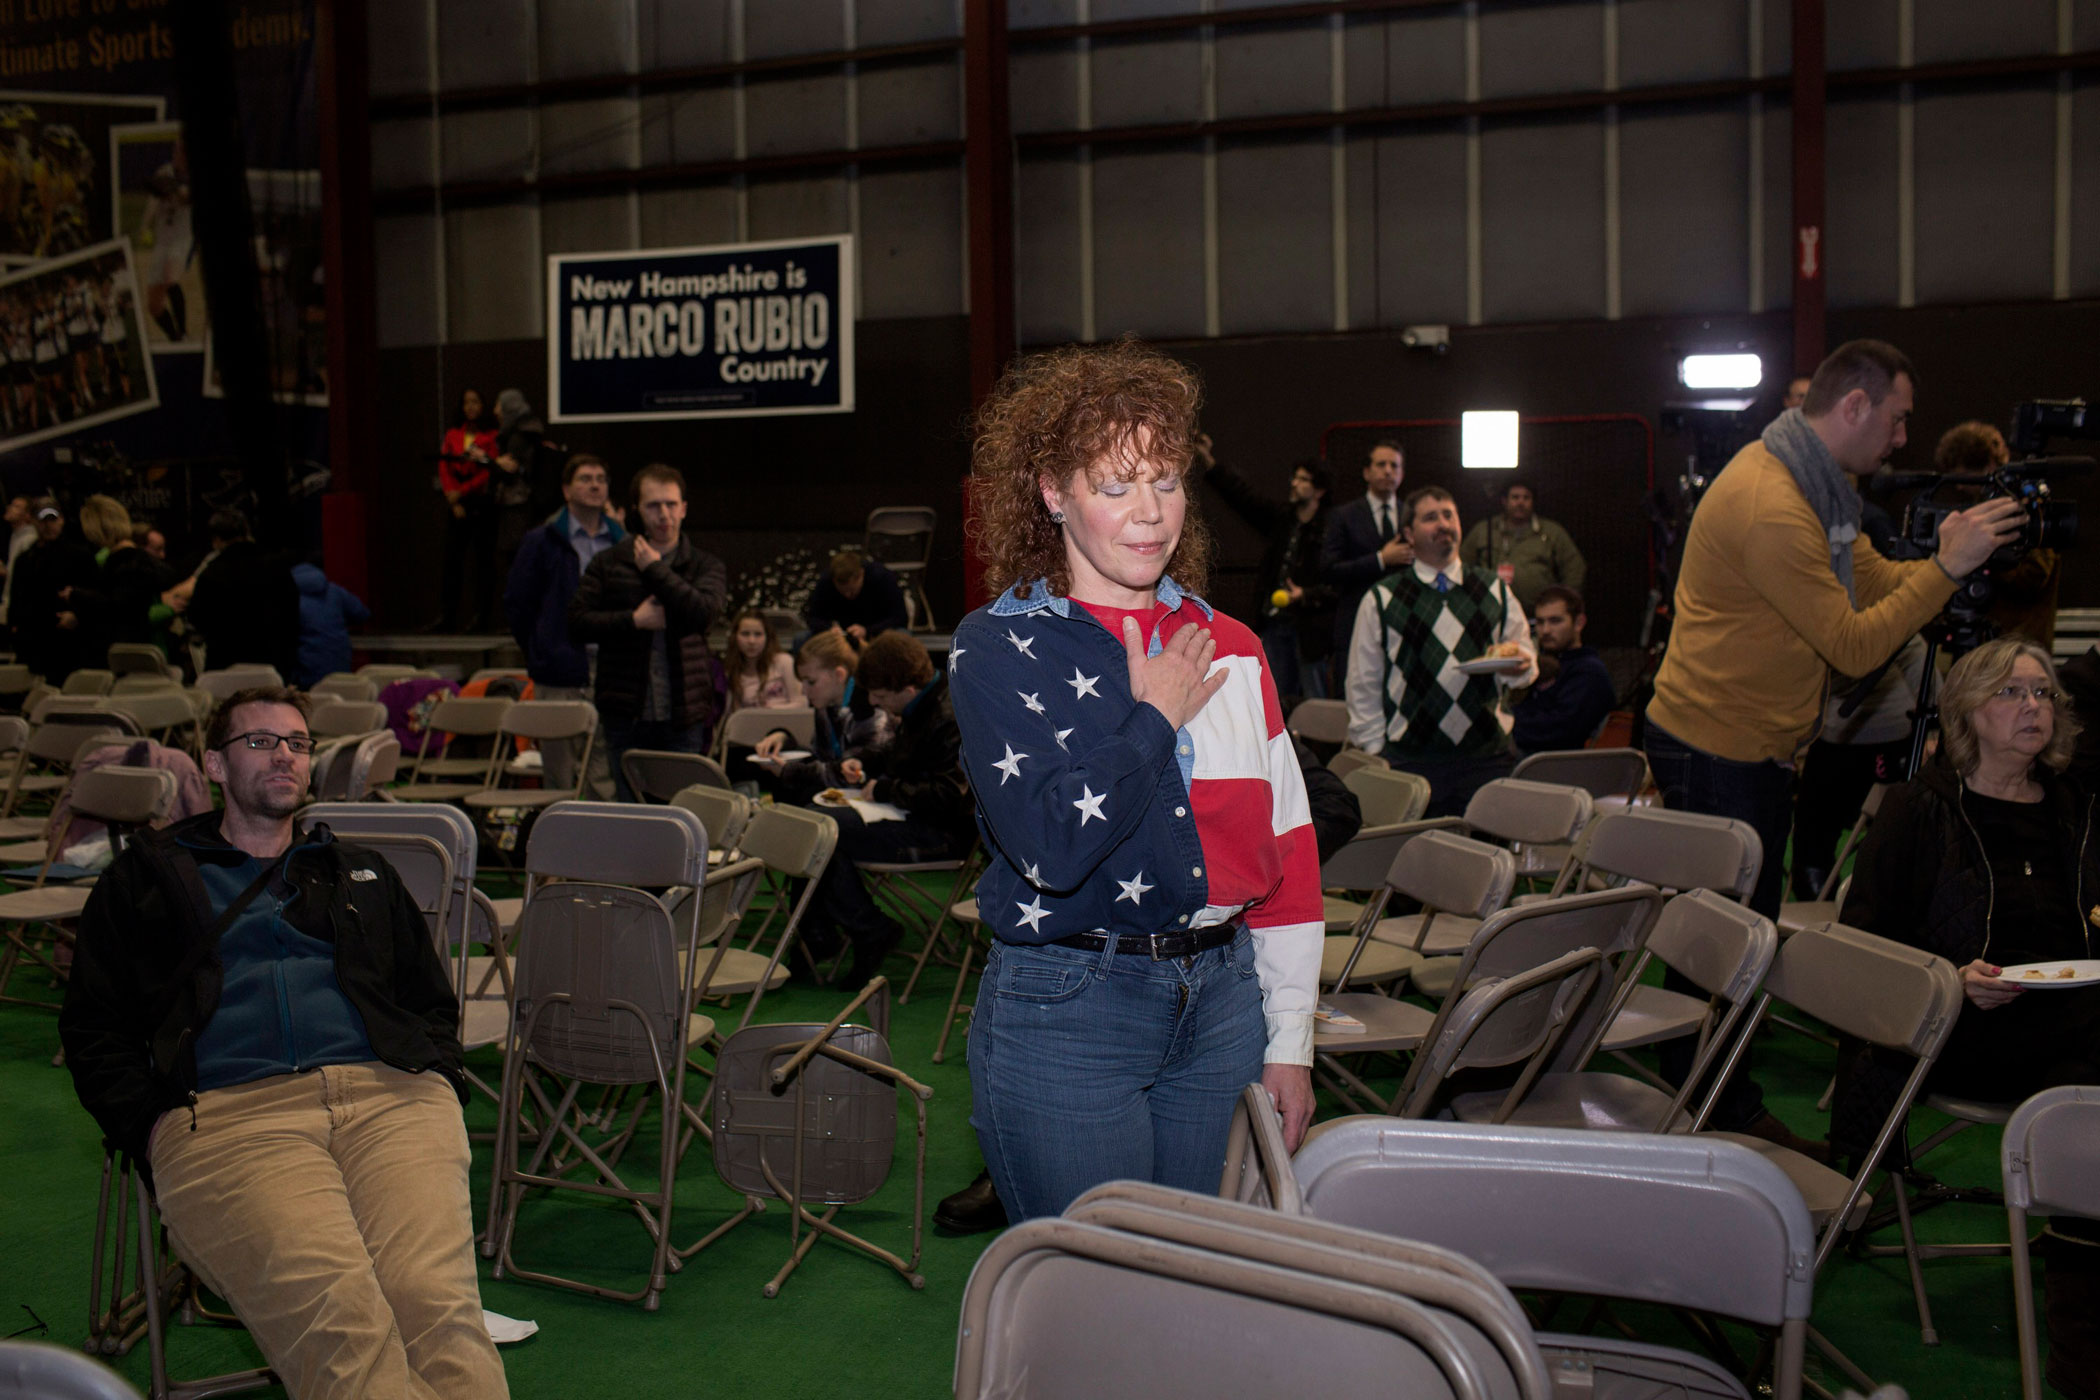 A supporter of Florida Sen. Marco Rubio attends a campaign event at the Ultimate Sports Academy in Manchester, N.H. on Feb. 7, 2016.